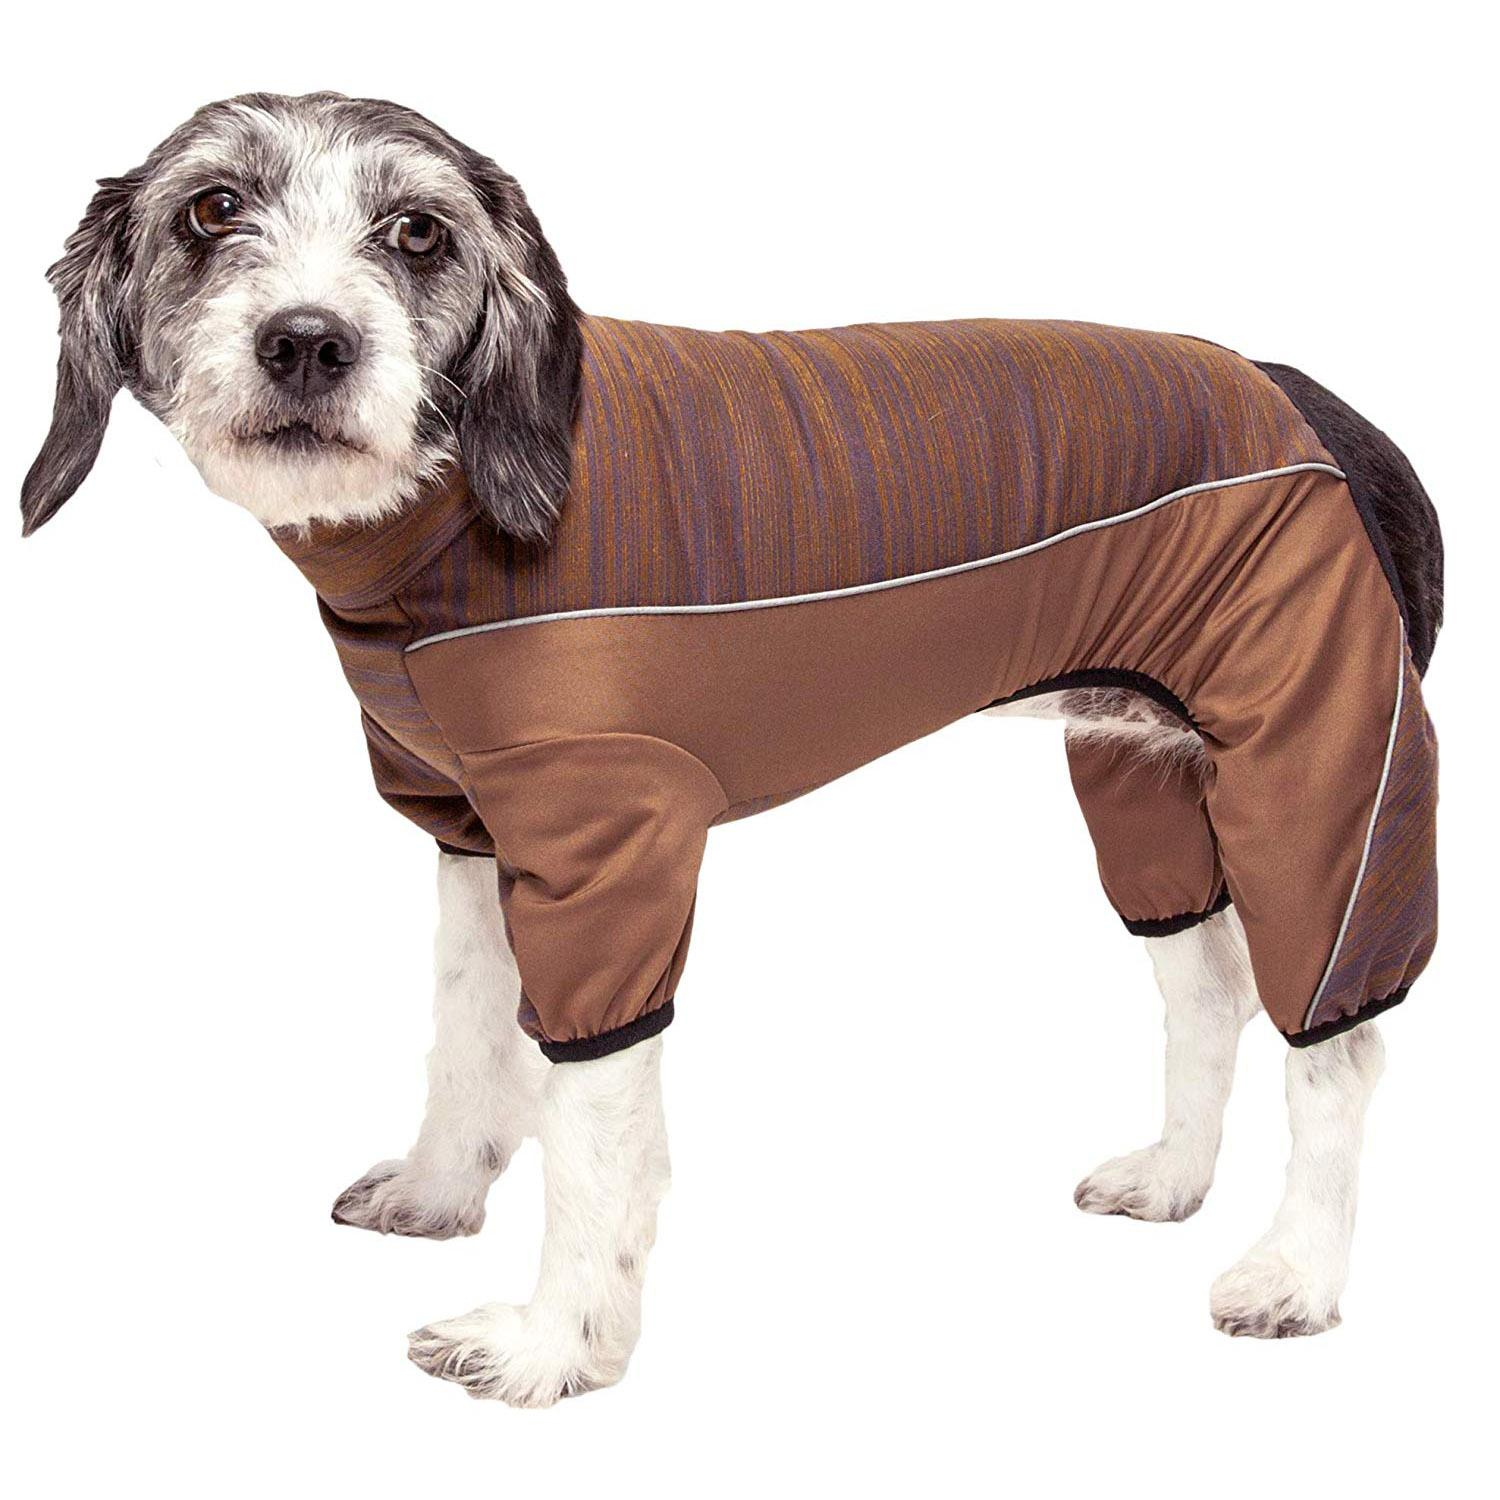 Pet Life ACTIVE 'Chase Pacer' Performance Full Body Dog Warm Up - Brown